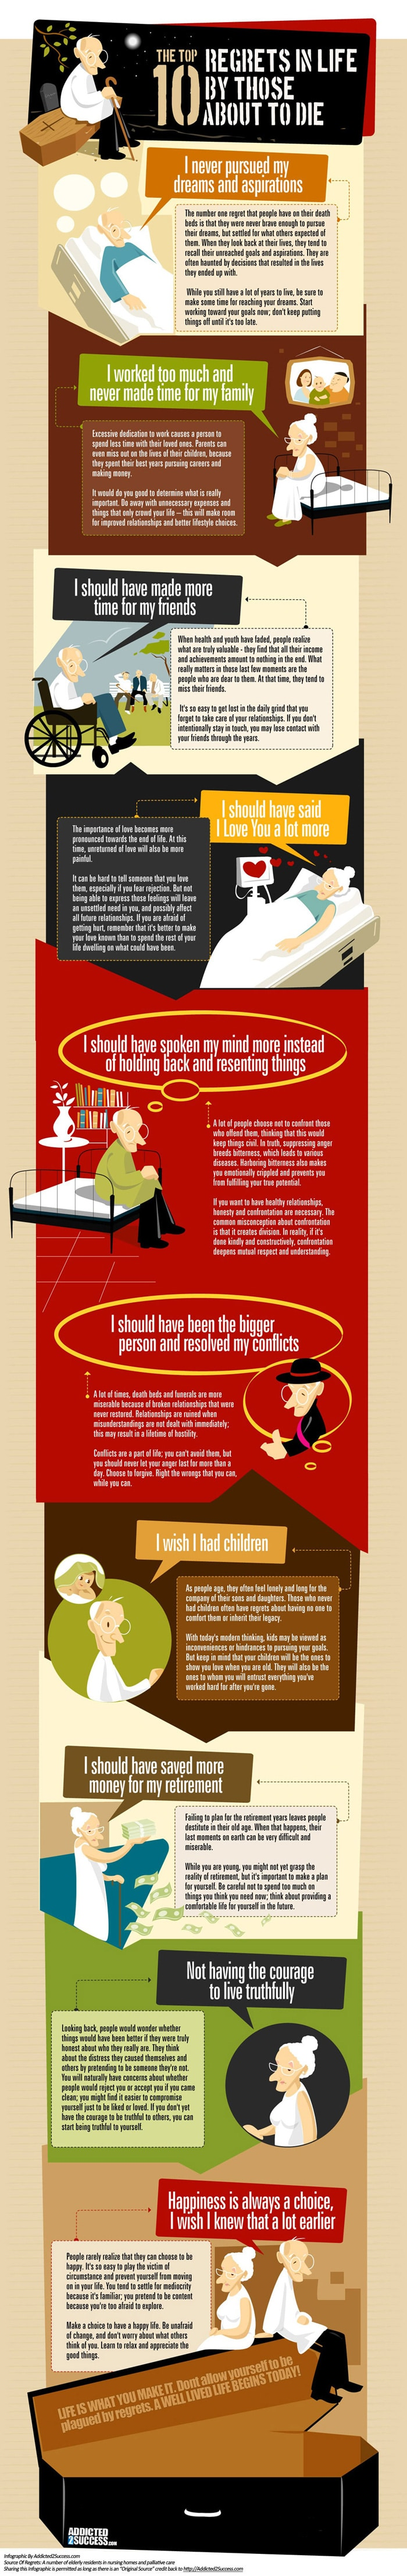 Infographic+The+Top+10+Regrets+In+Life+By+Those+About+To+Die-Addicted2Success